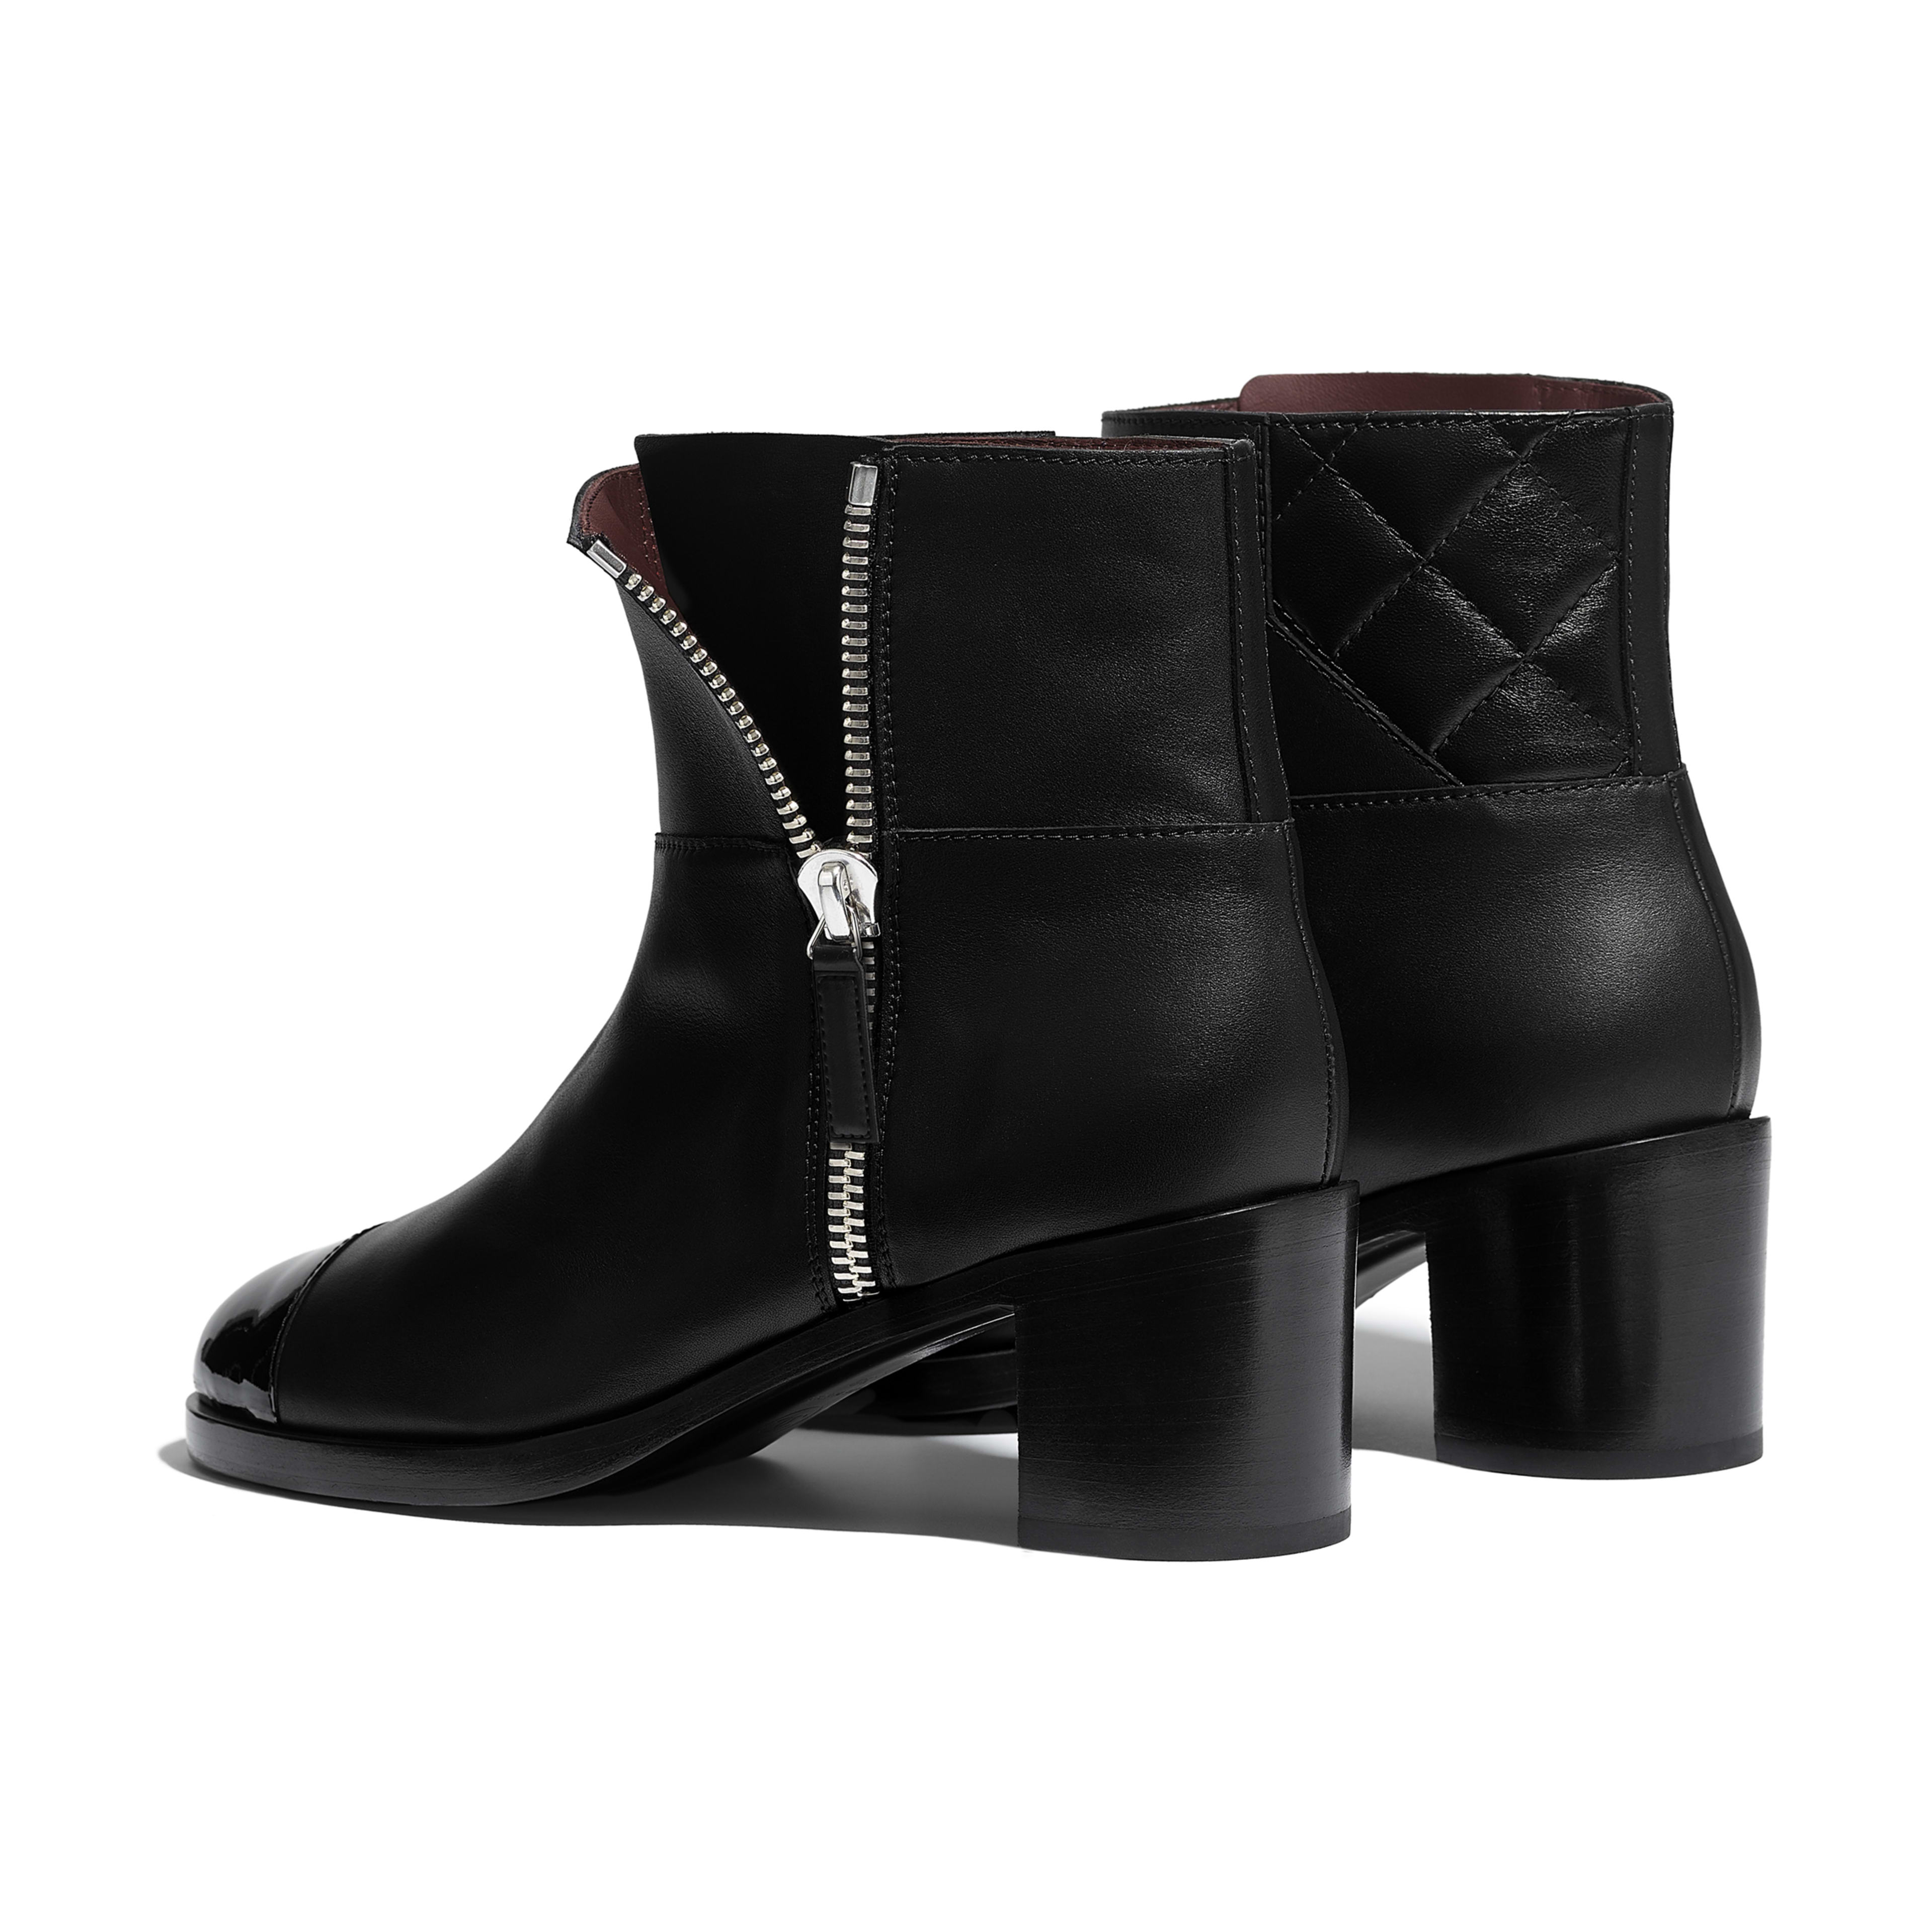 Ankle Boots - Black - Calfskin & Patent Calfskin - Other view - see full sized version